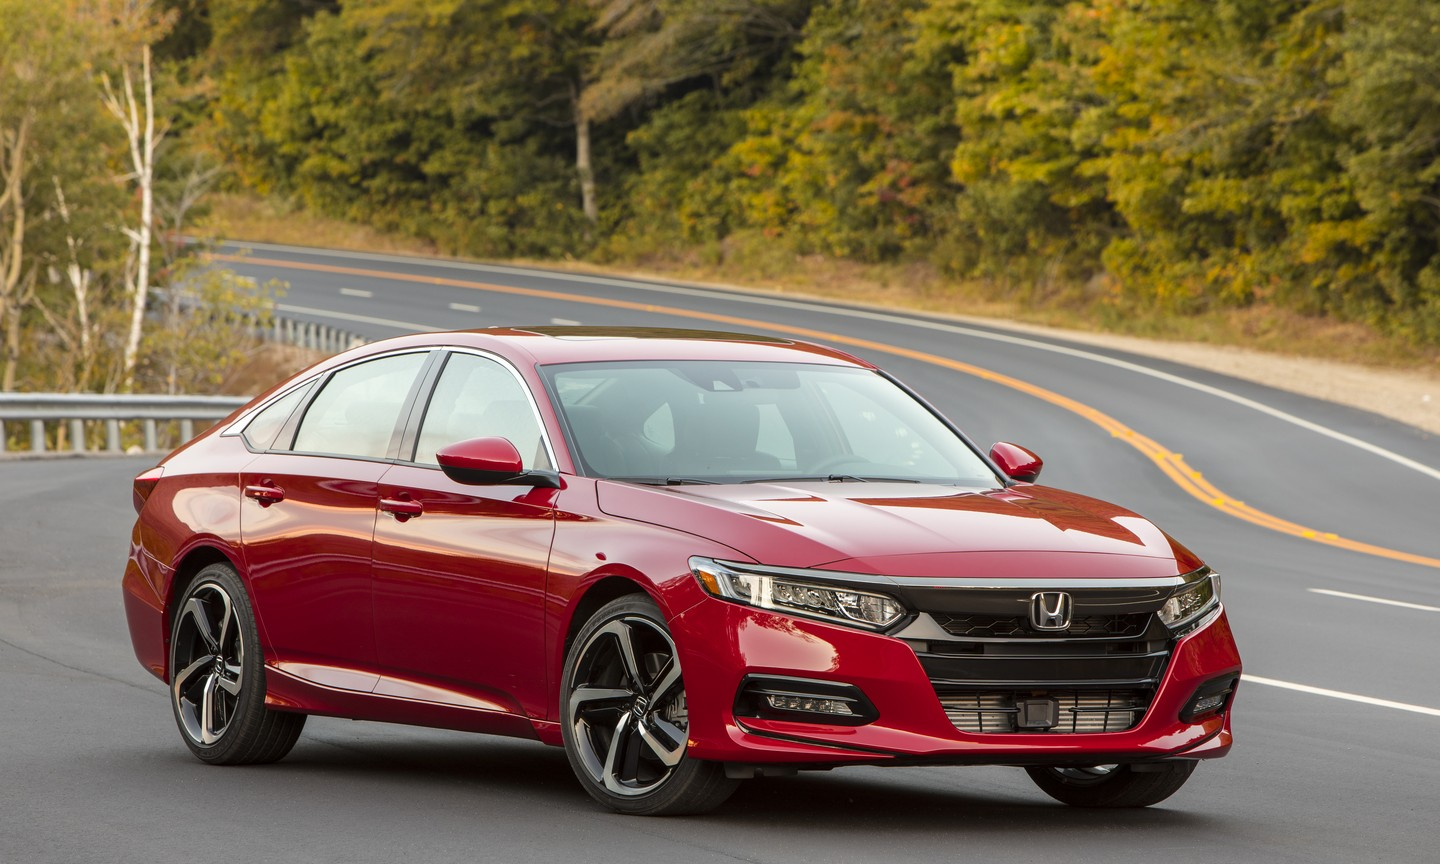 At Hall Honda Virginia Beach, We Feel Like Itu0027s Easy To Brag About The  Product We Sell When We Sell A Product Like Honda. Once Again, Several Honda  Models ...